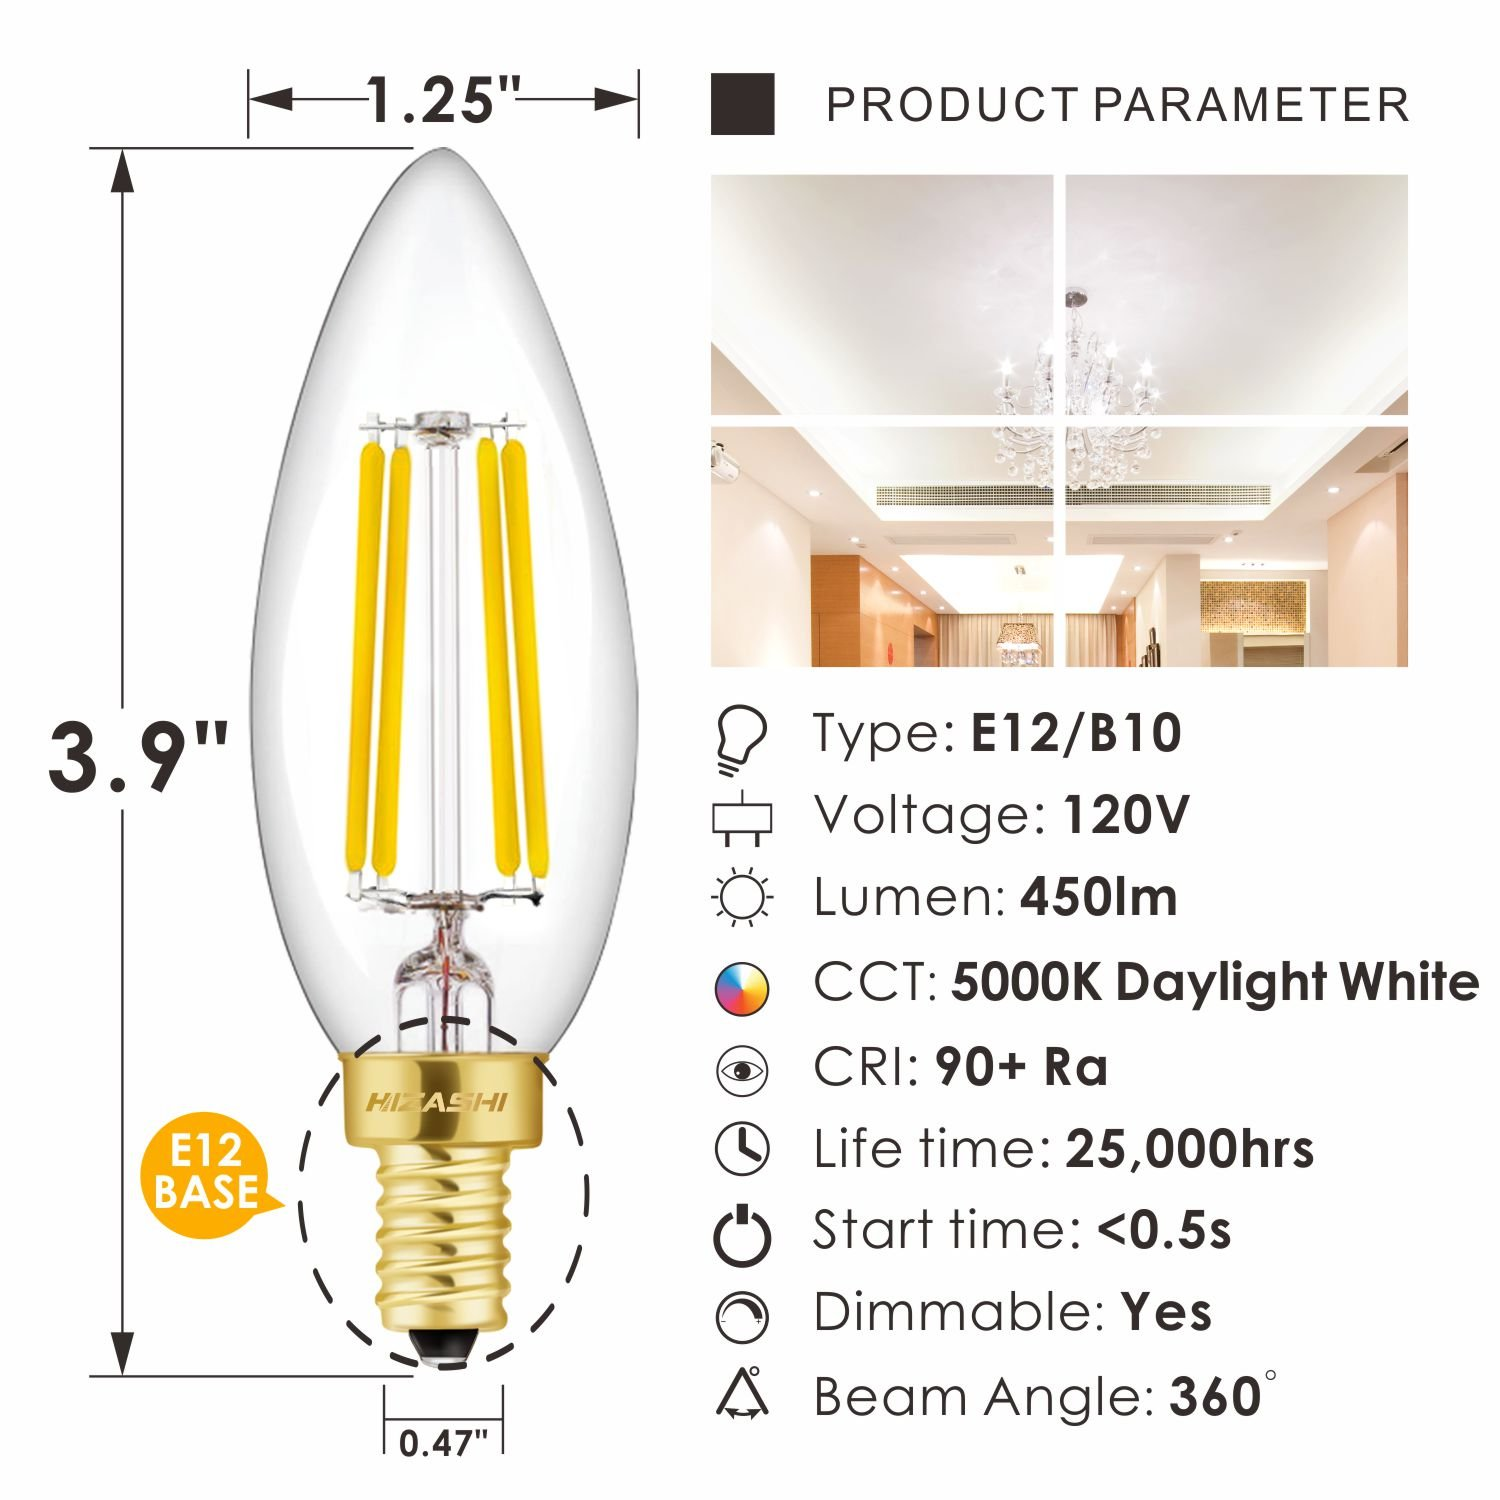 Hizashi Fully Dimmable 90 Cri E12 Led Filament Bulb 40w Equivalent 300pwh Diva 300w Electronic Low Voltage Single Pole Dimmer In White 450 Lumen B10 Ca10 Candelabra Bulbs 5000k Daylight Ul Listed